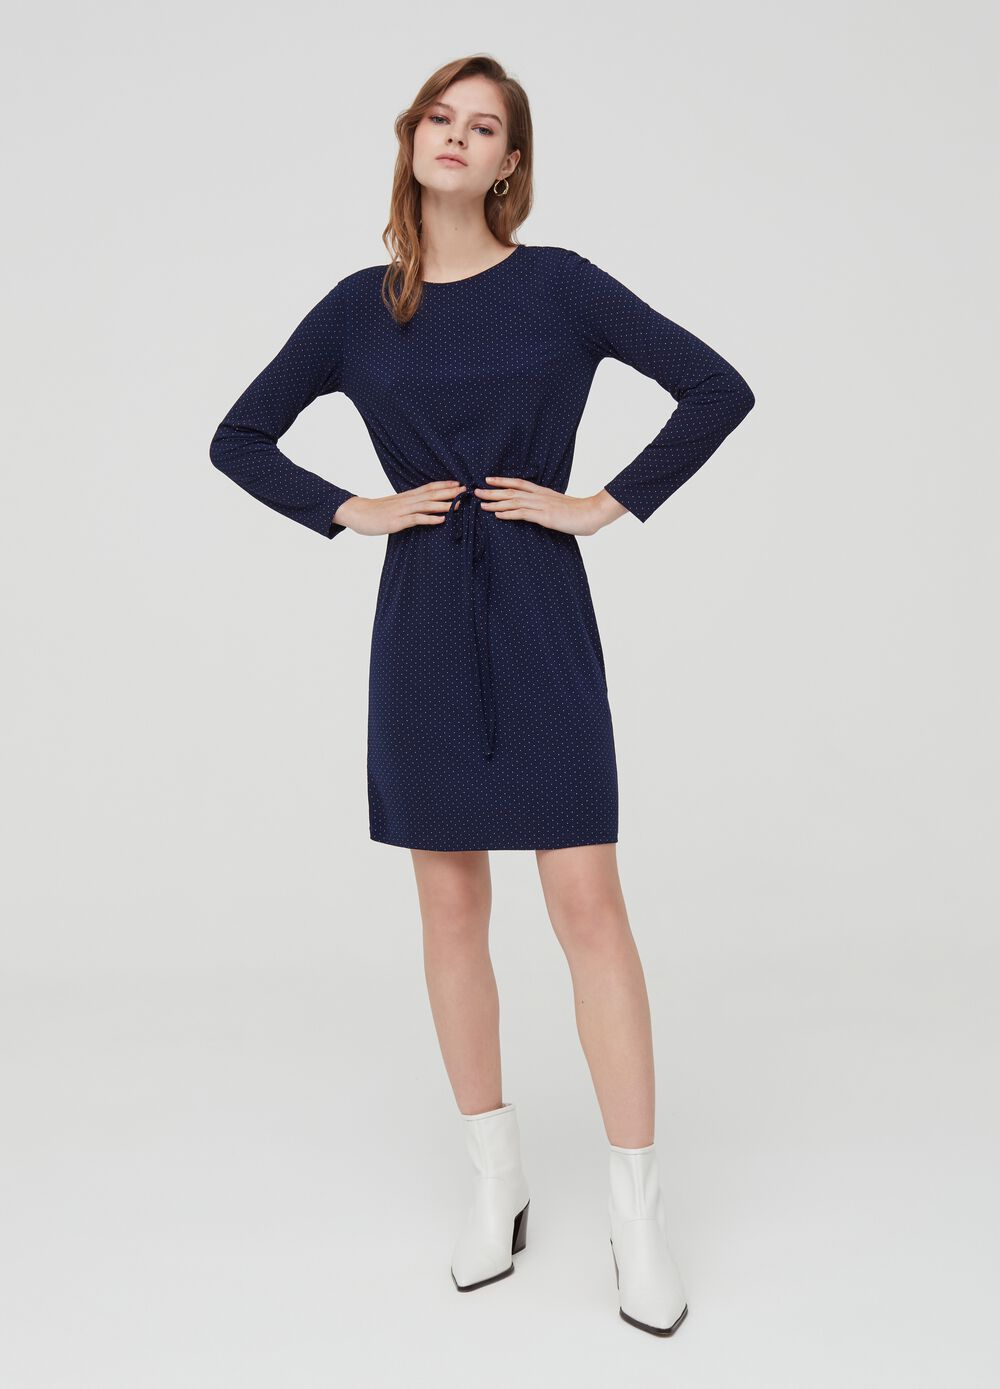 Long-sleeved dress with micro polka dots